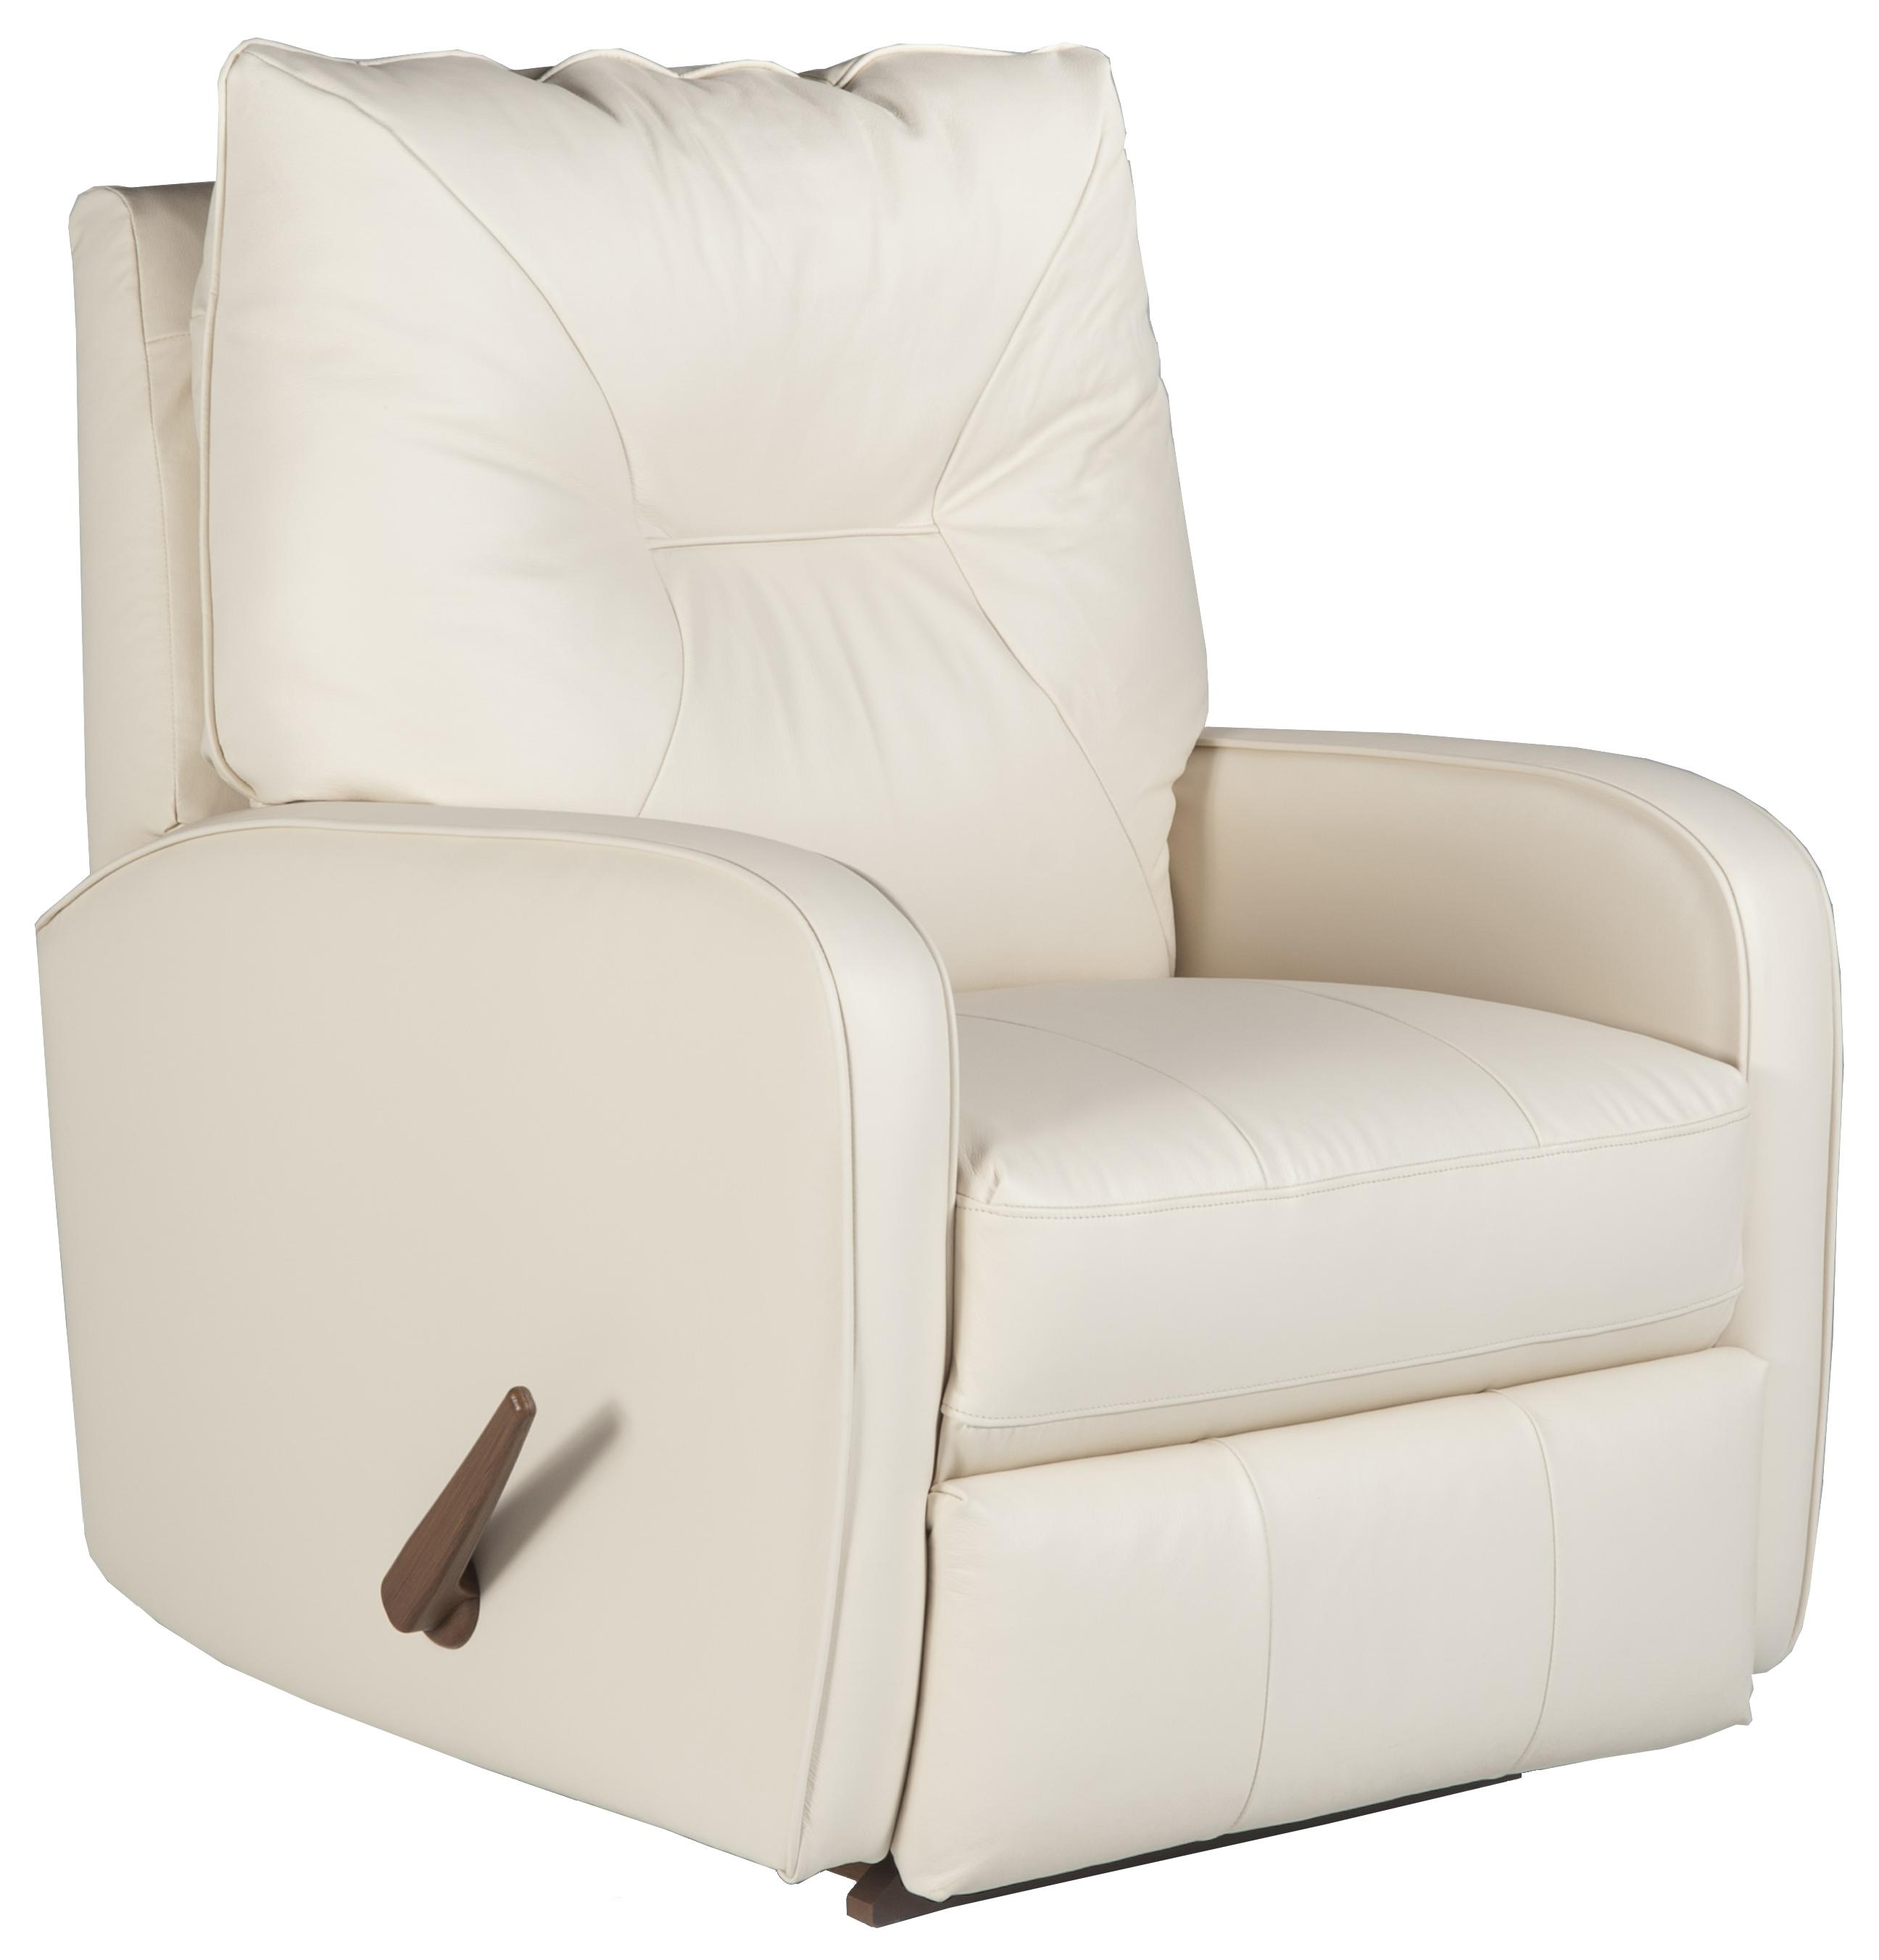 Recliners Medium Contemporary Ingall Swivel Rocker Recliner In Sleek Modern Style By Best Home